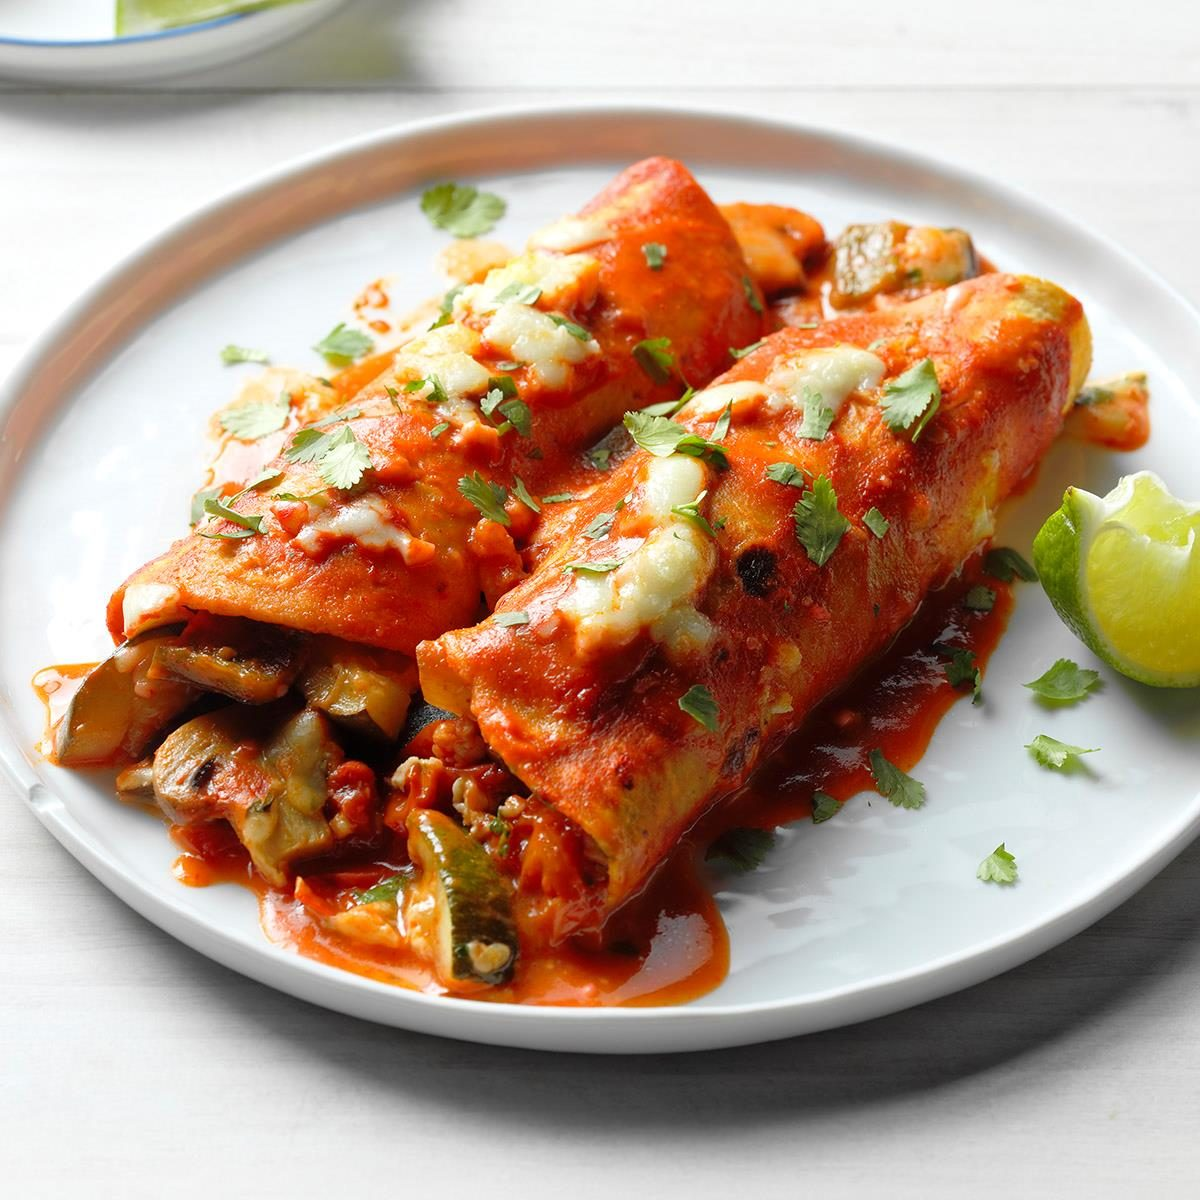 Saturday: Farmers Market Enchiladas